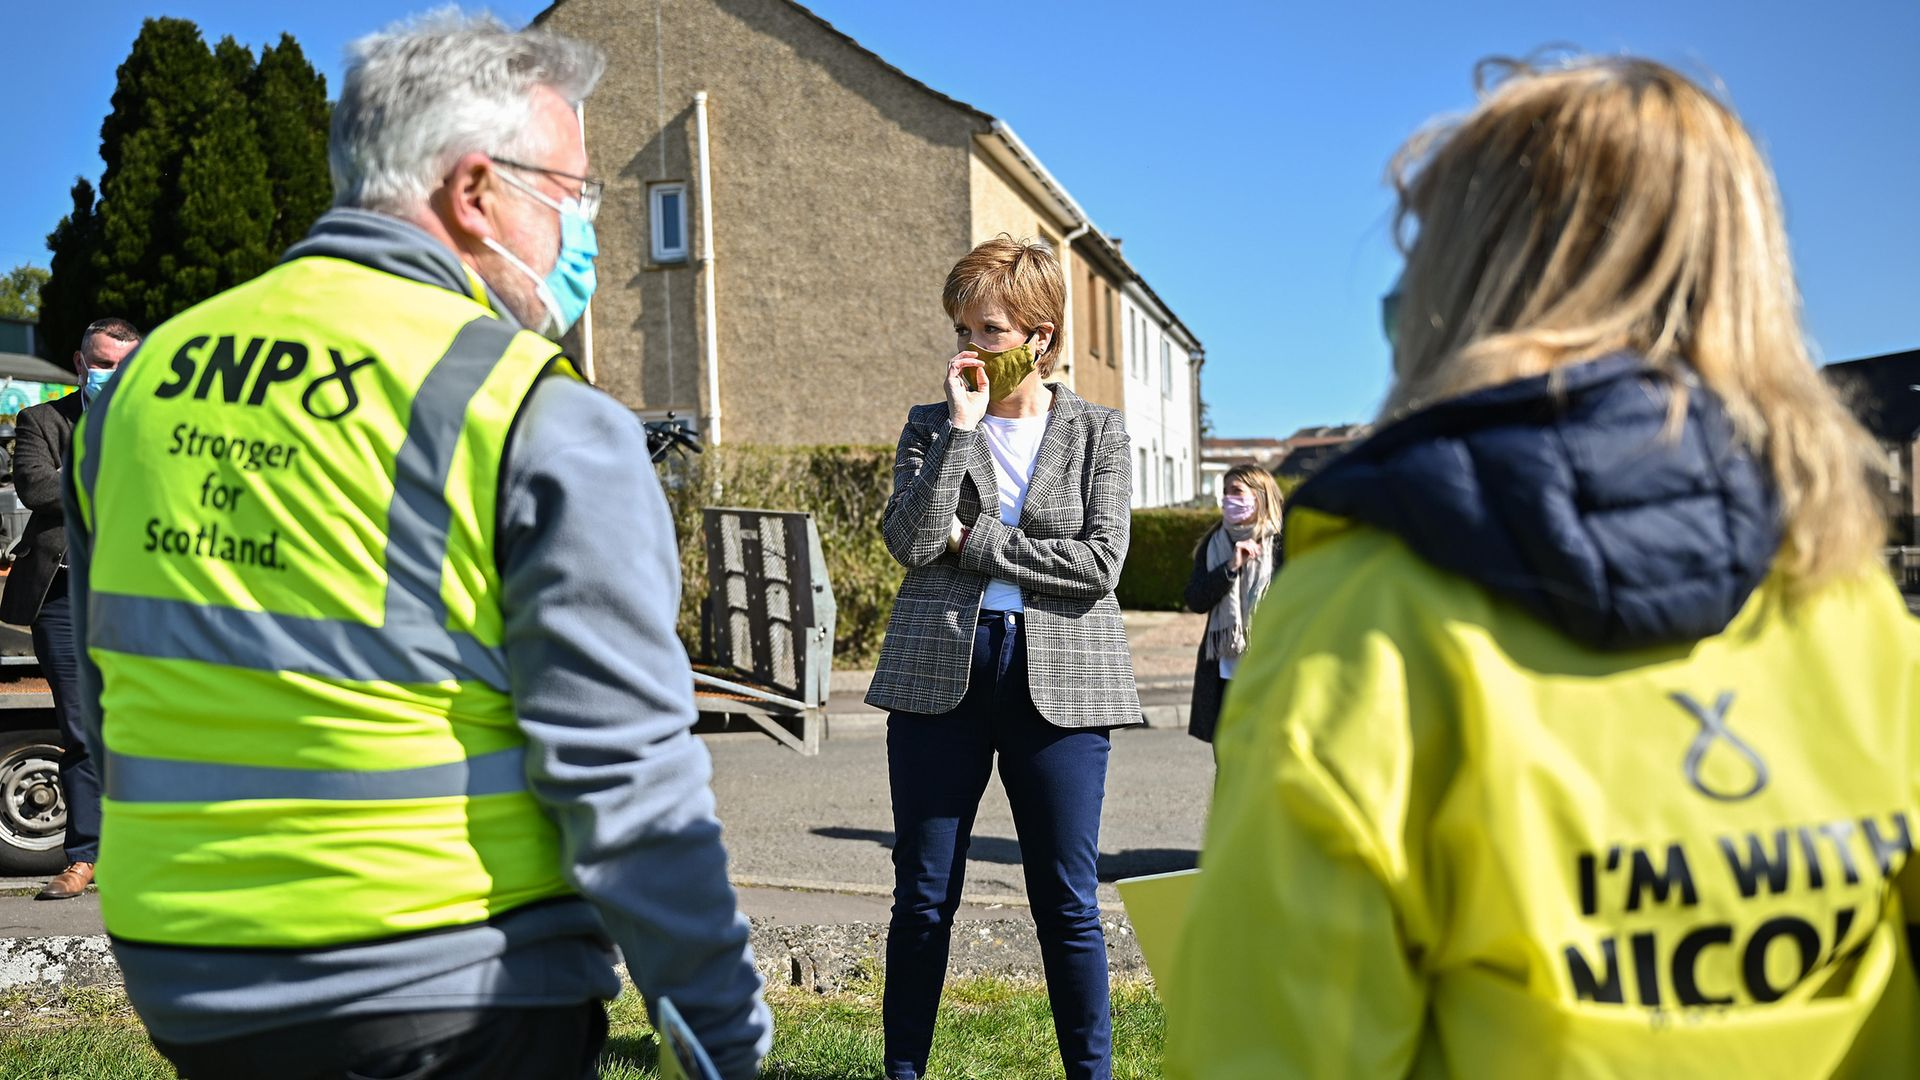 First minister Nicola Sturgeon speaks to Scottish National Party (SNP) volunteers in Dumbarton, West Dunbartonshire, during campaigning for the Scottish Parliamentary election - Credit: PA